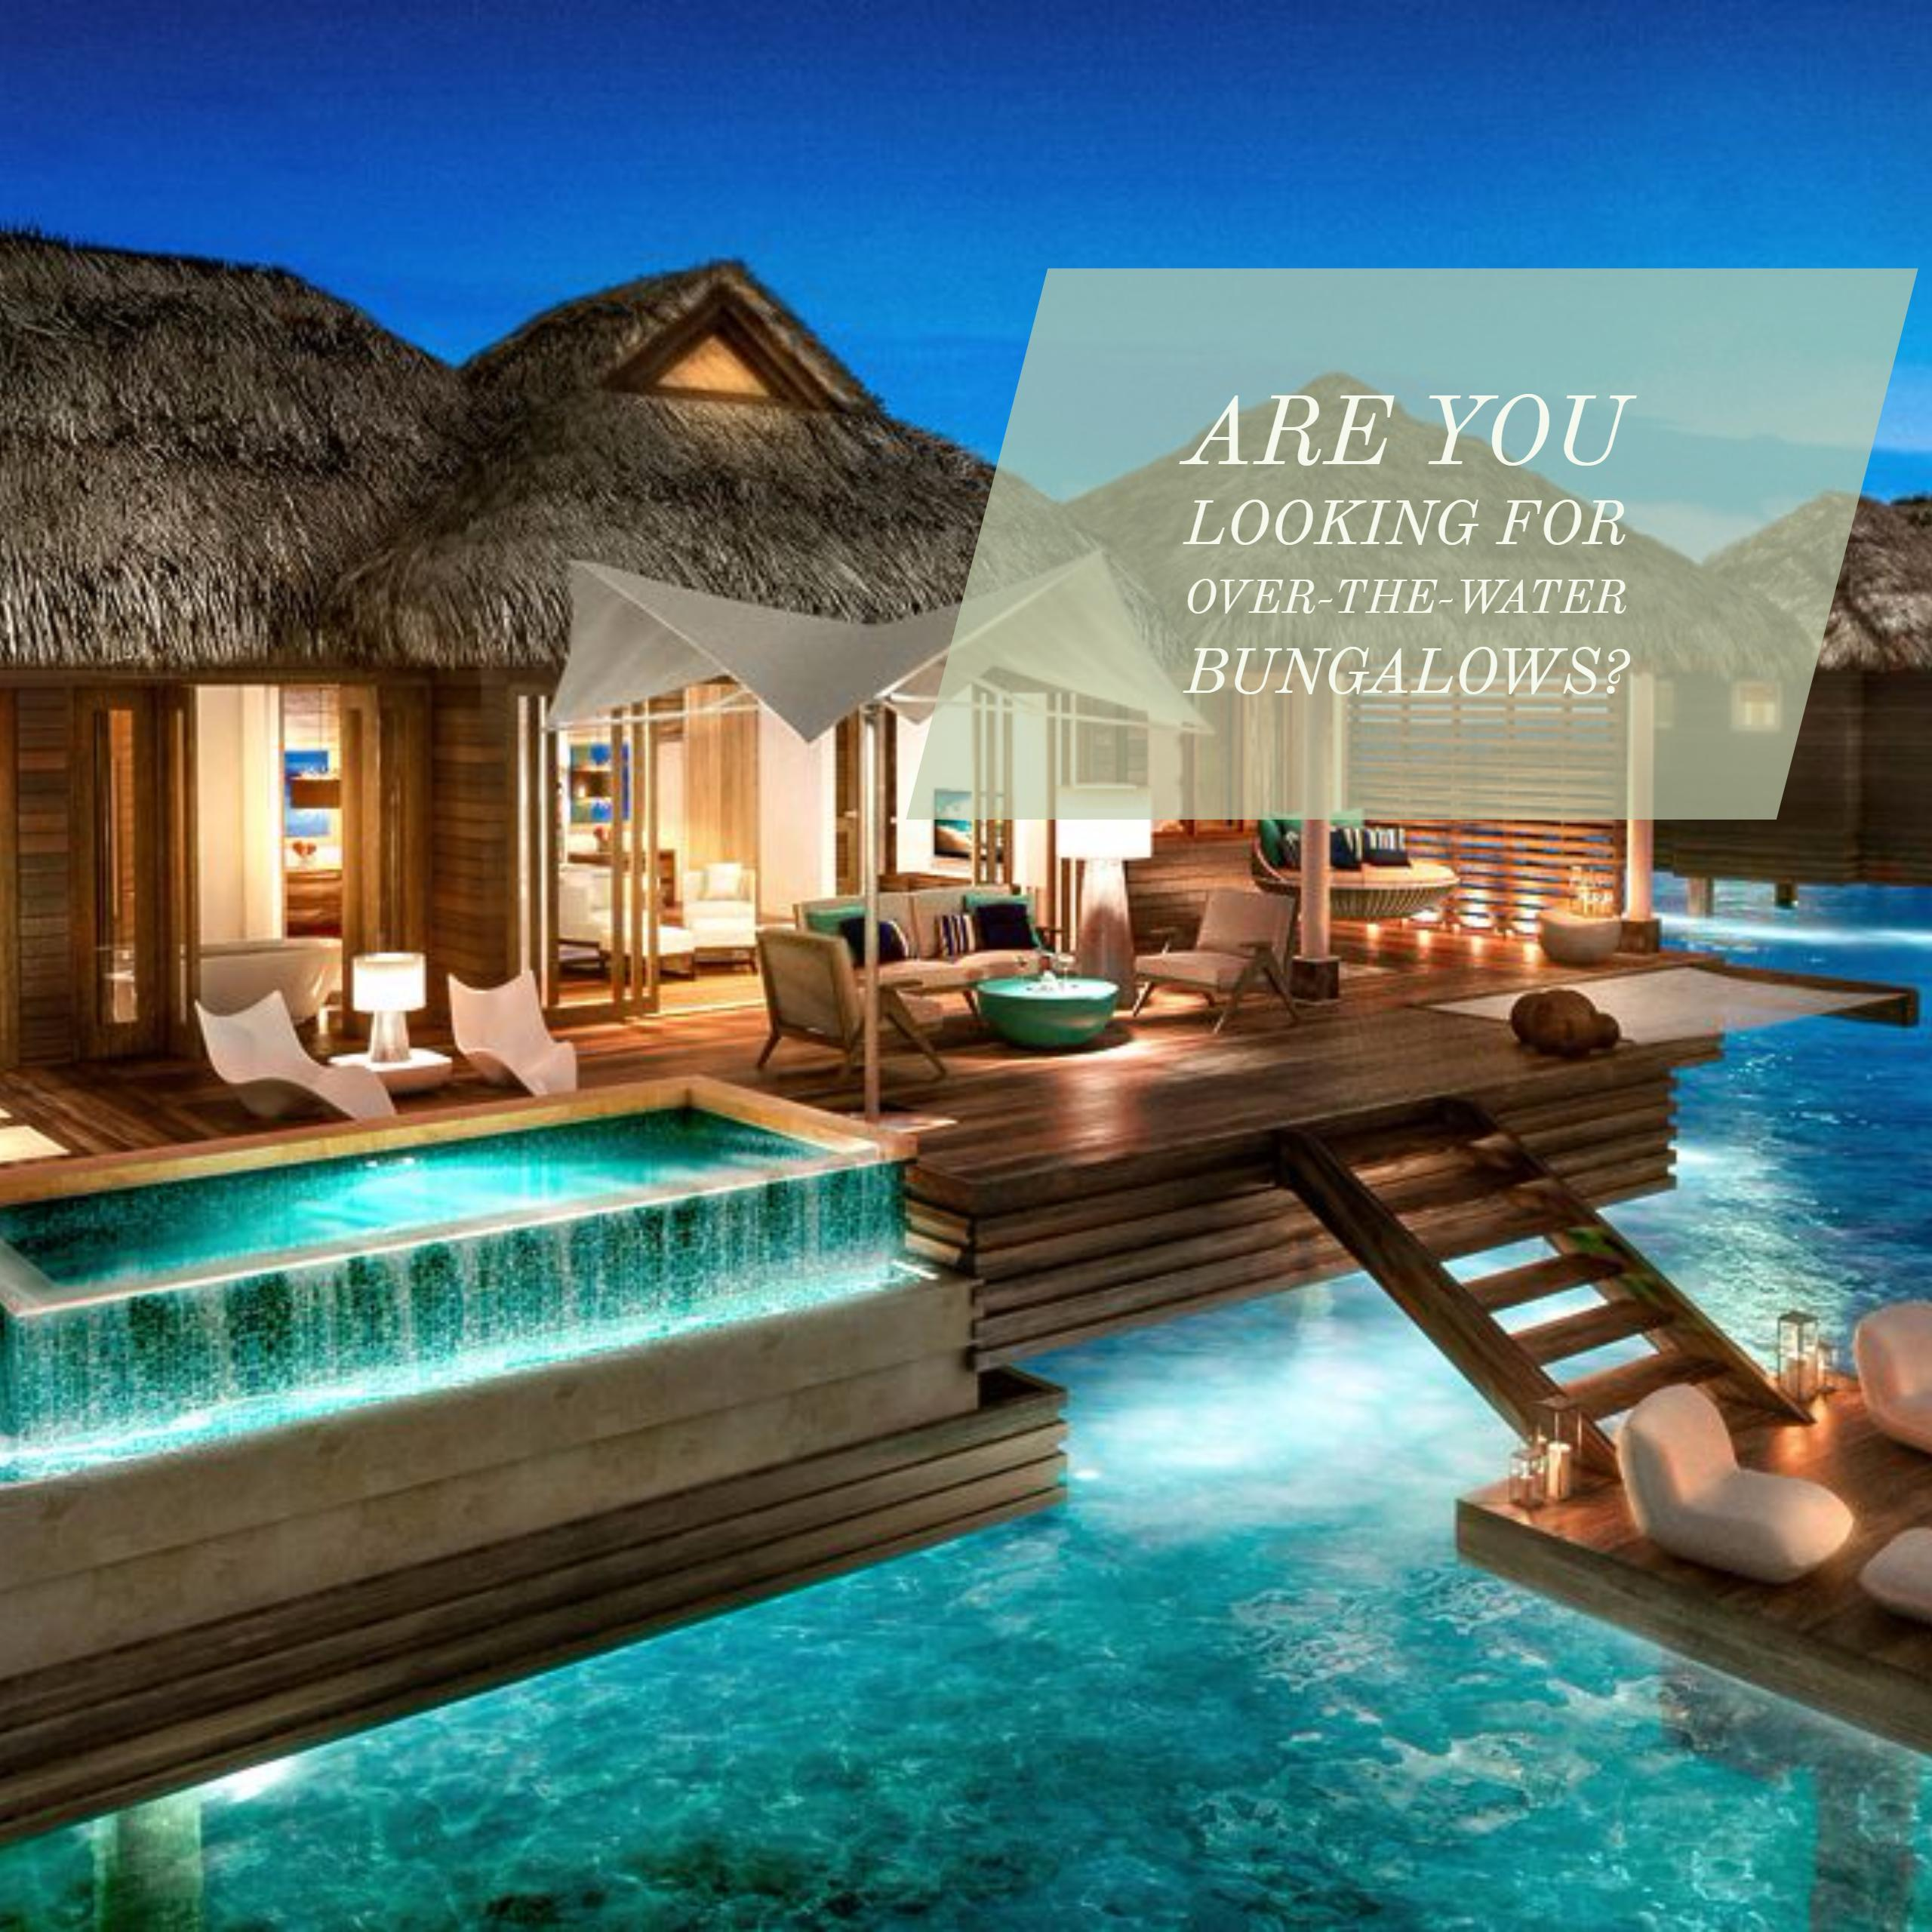 Are You Looking For Over-the Water Bungalows?